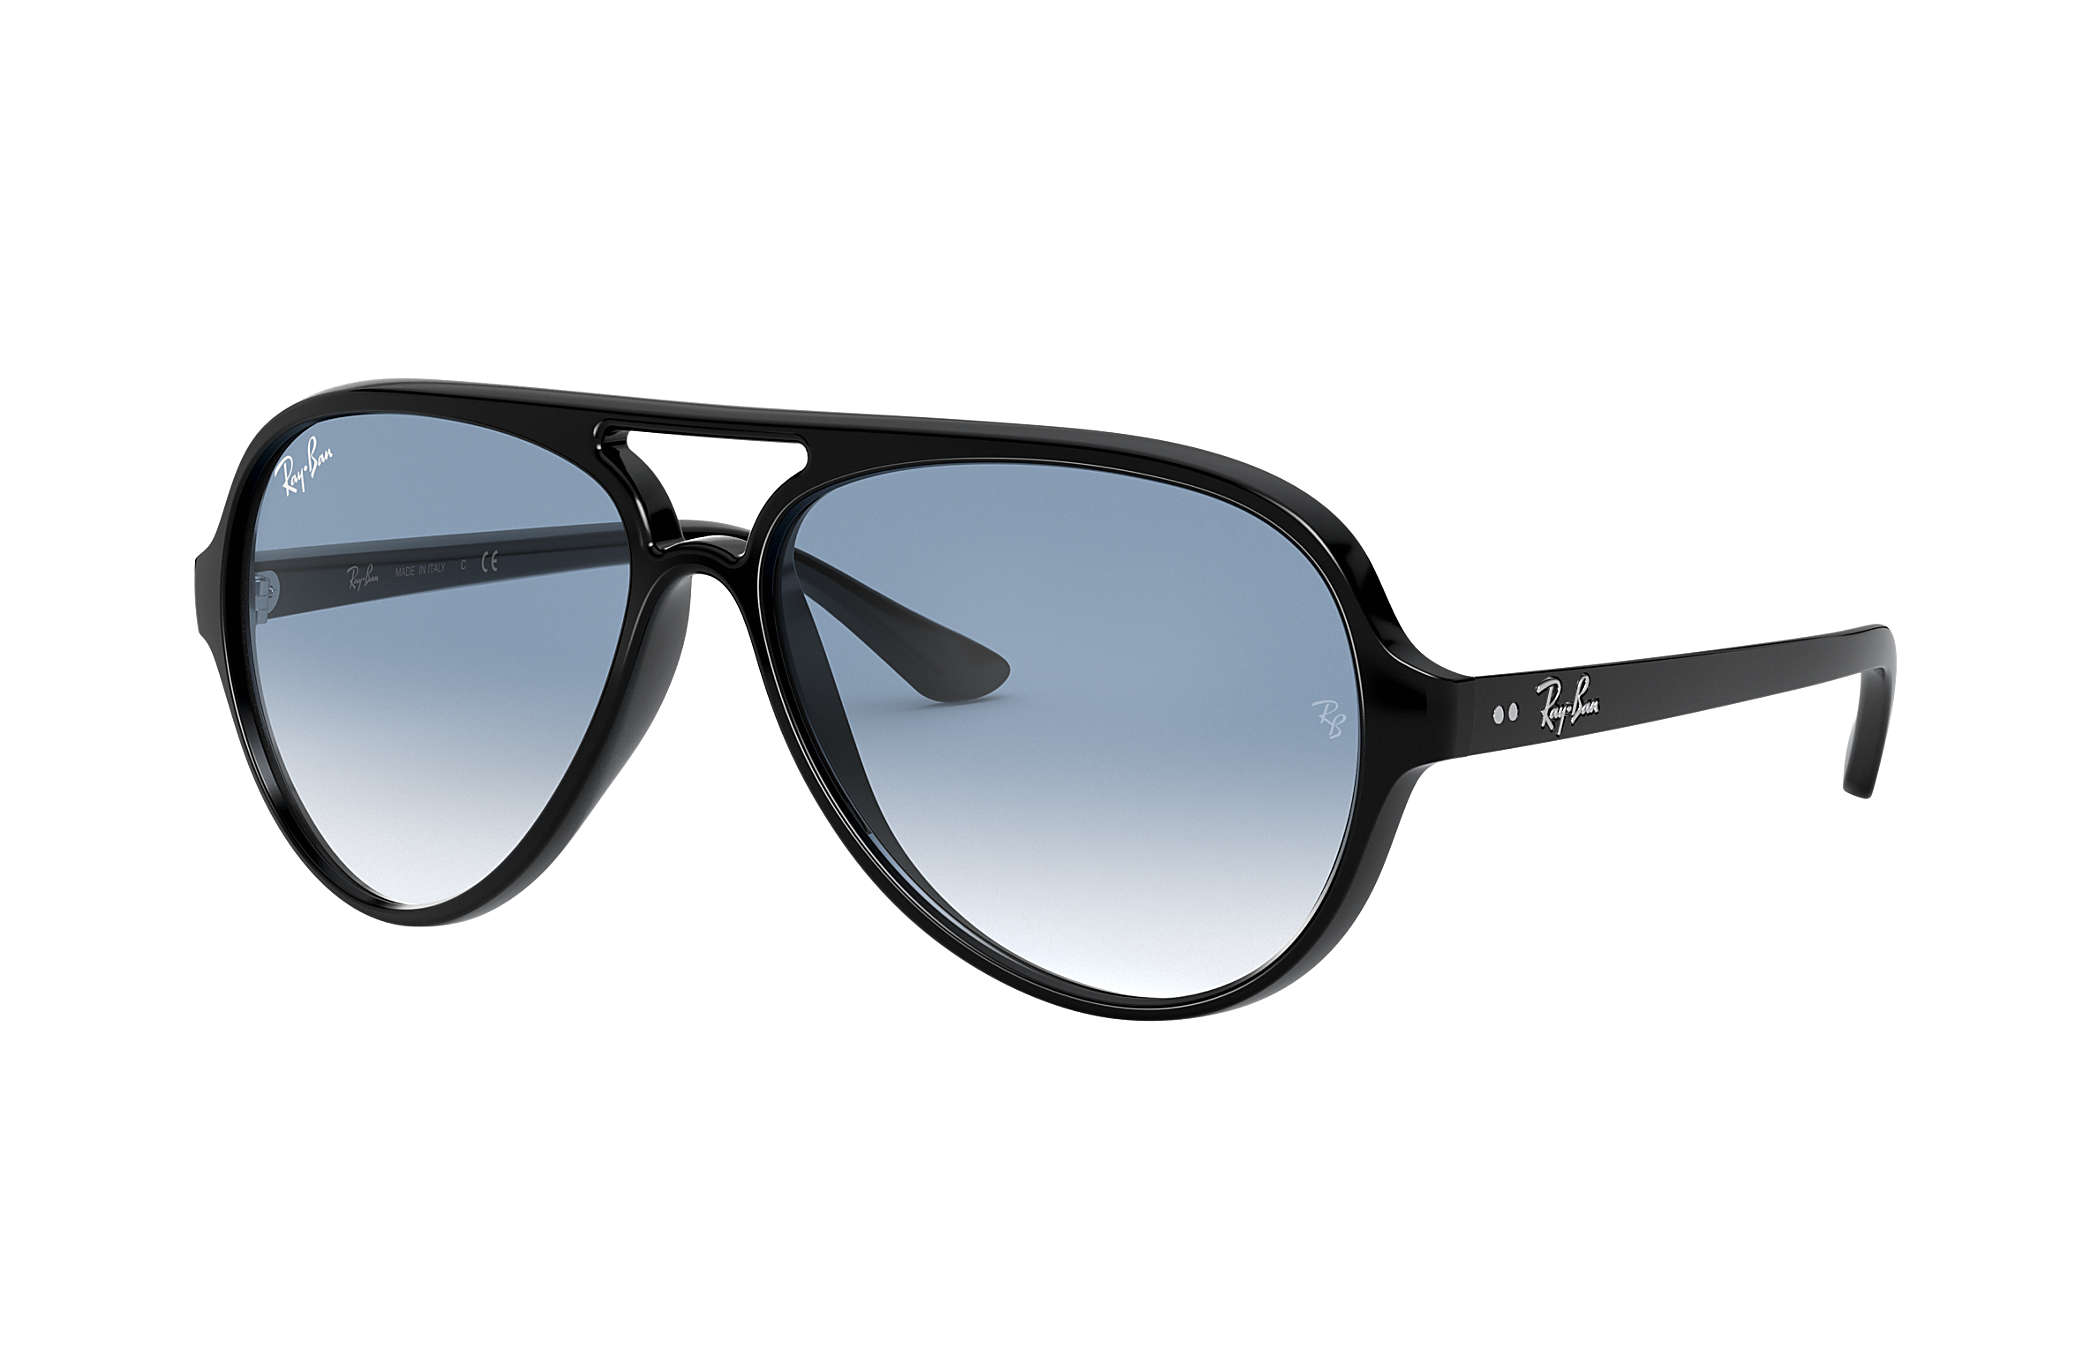 5dce730ab1 Cats 5000 Classic Ray-Ban RB4125 Noir - Injected - Verres Bleu clair ...